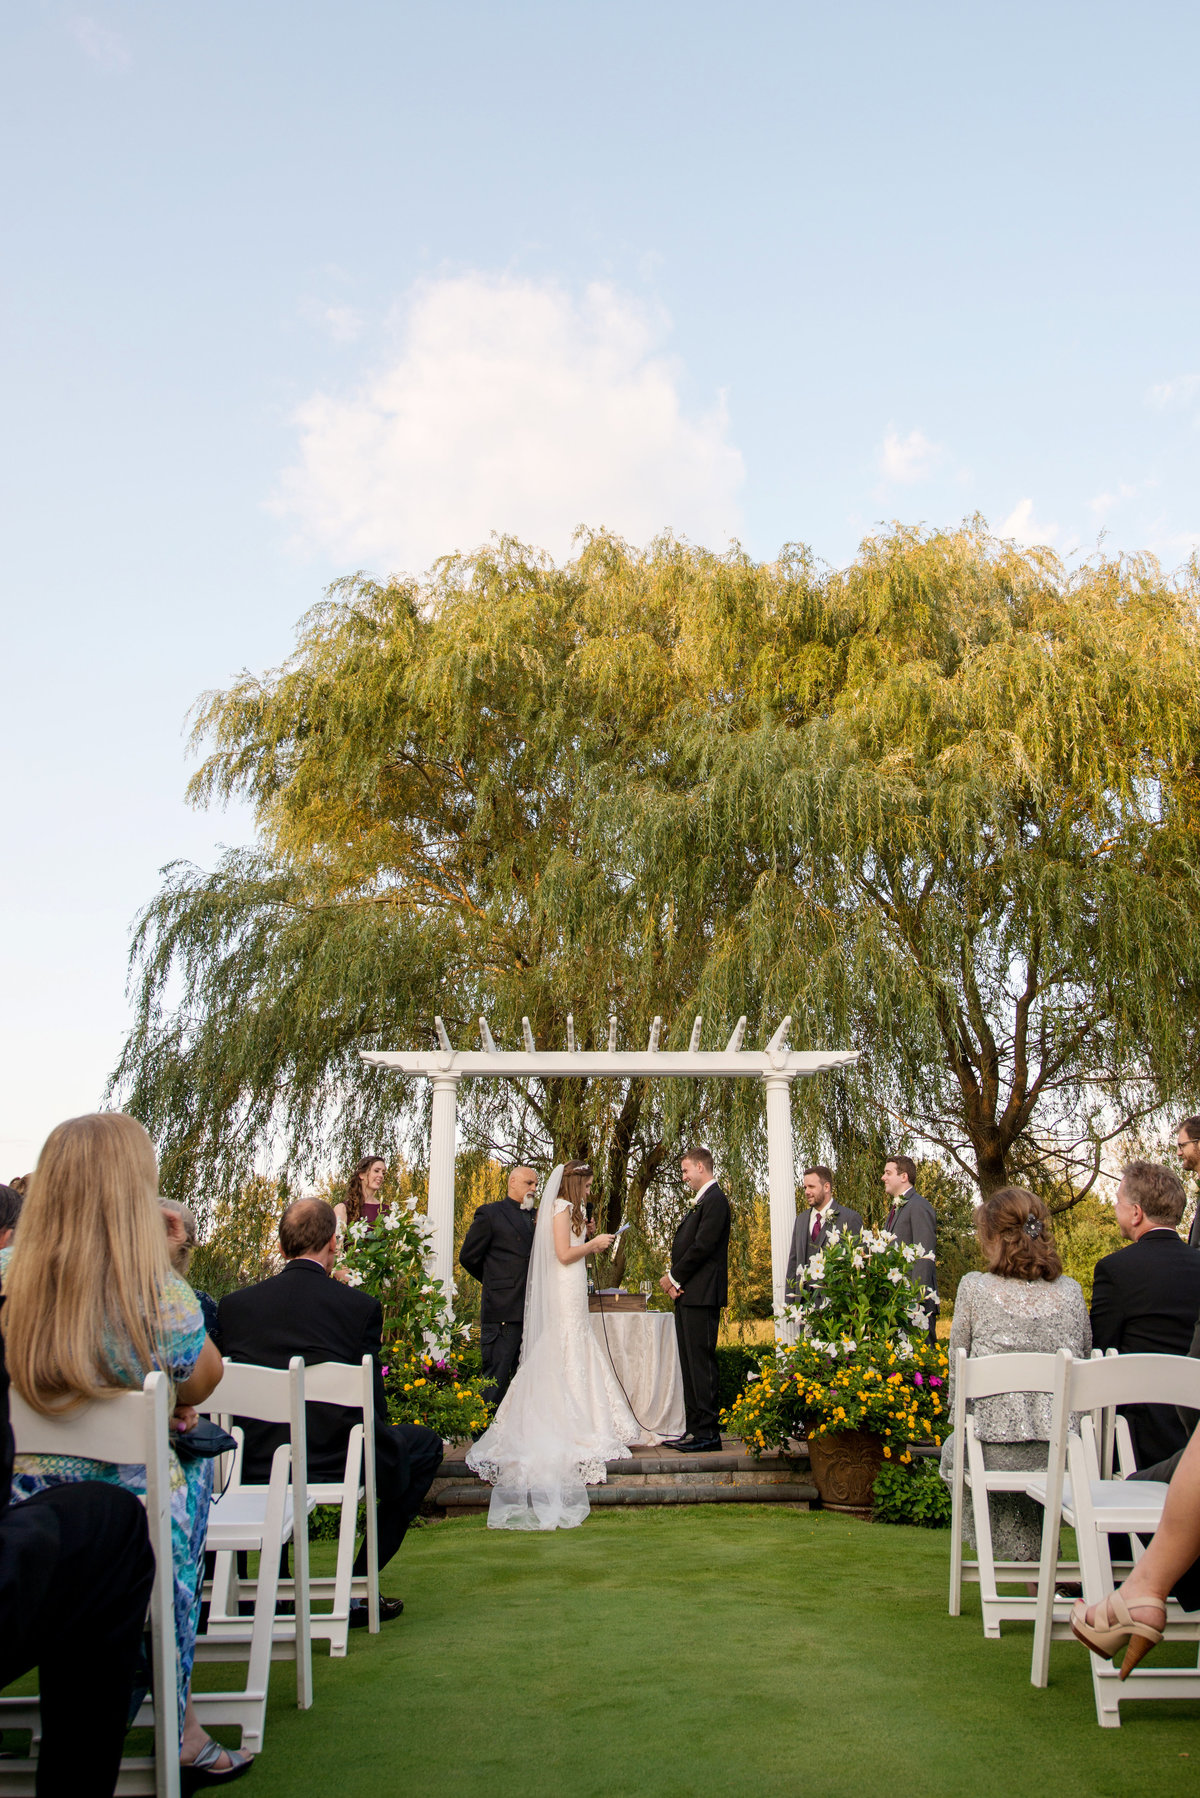 photo of ceremony with bride and groom during wedding at Willow Creek Golf and Country Club